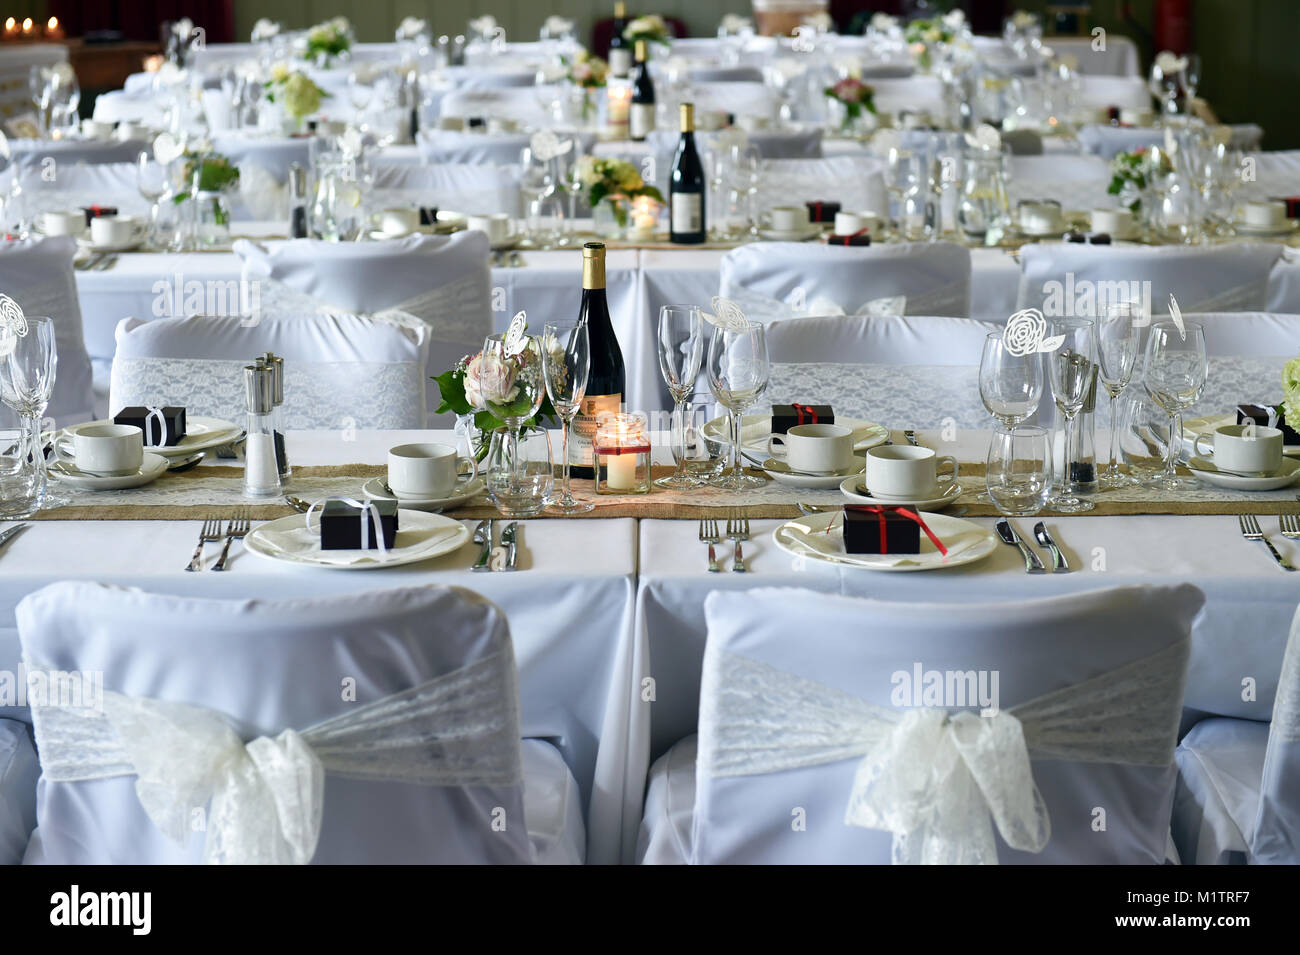 Wedding breakfast tables set up for the reception feast. - Stock Image